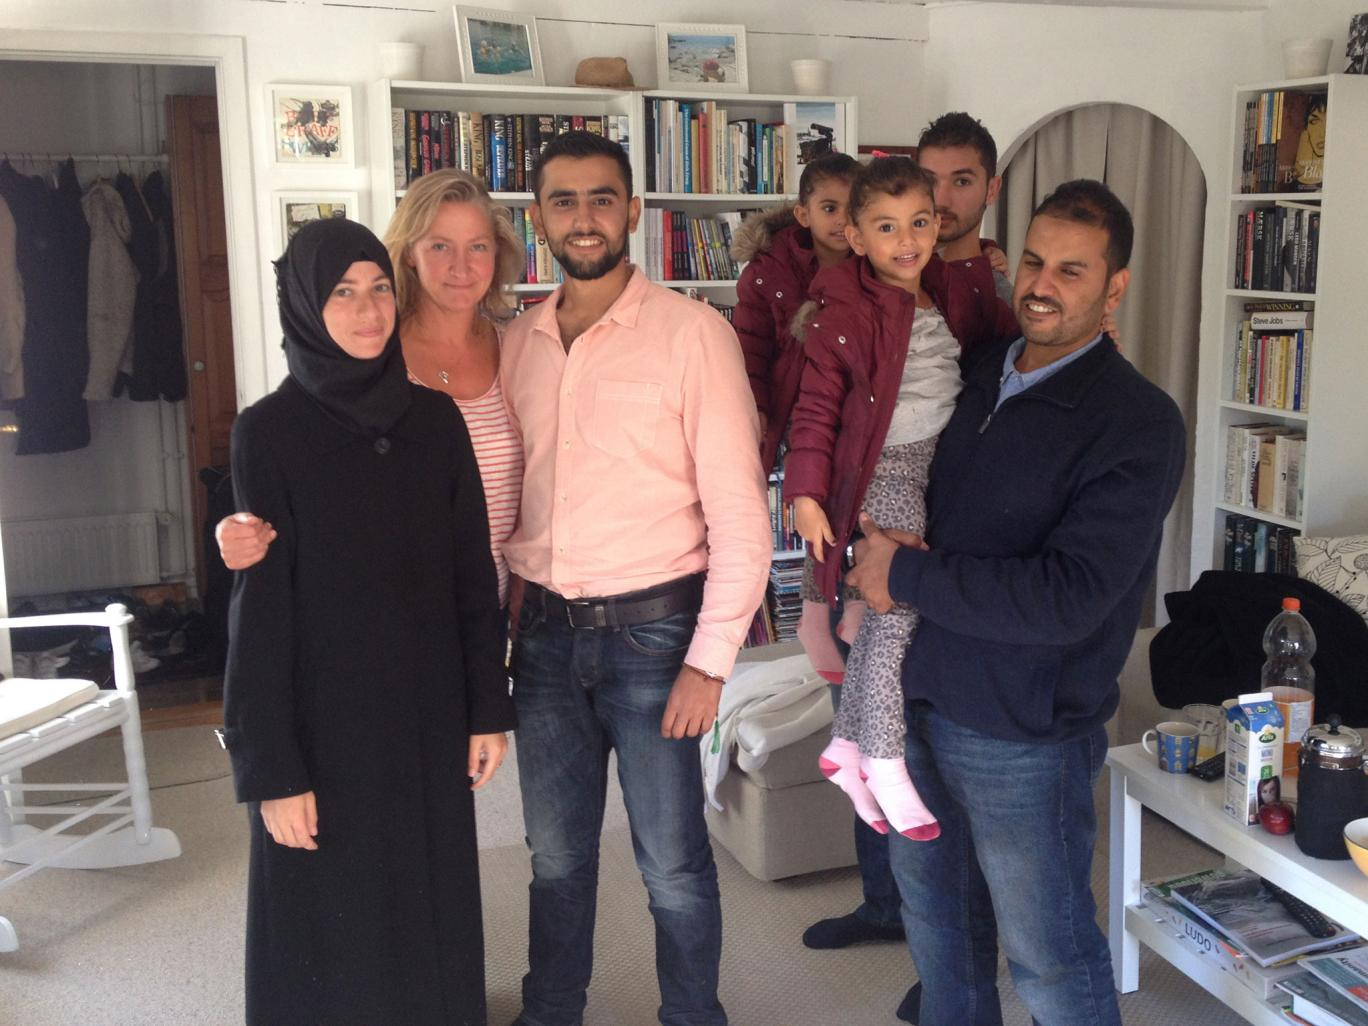 Lisbeth Zornig with the family of Syrian refugees she drove from Rodby to Copenhagen on 7 September 2015 Photo: Lisbeth Zornig